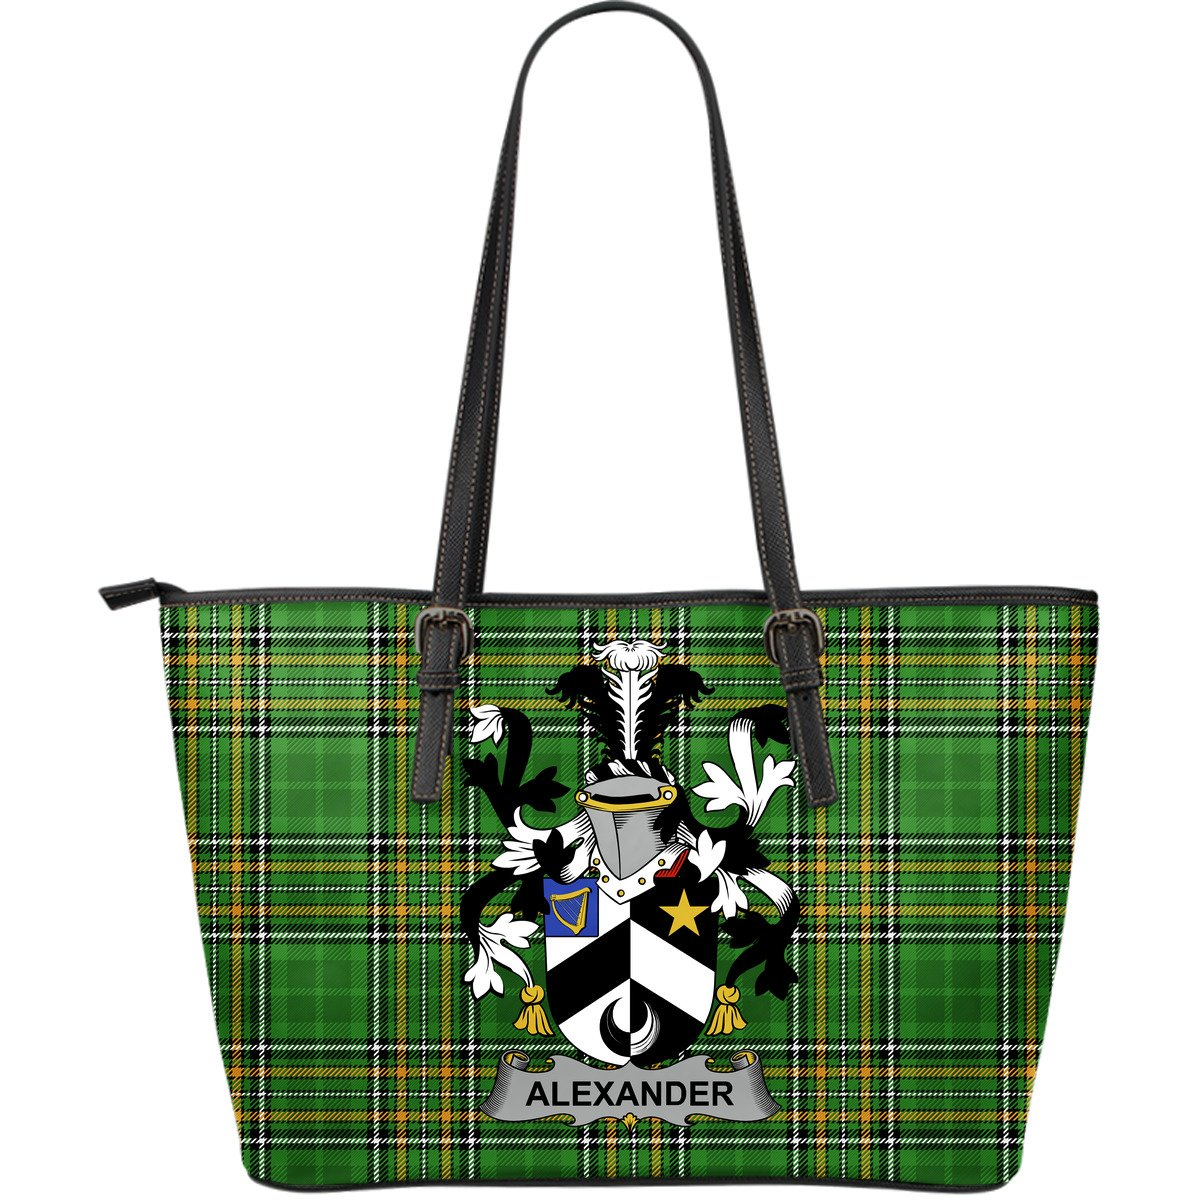 Alexander Ireland Leather Tote Irish National Tartan (Large Size) | Over 1400 Crests | High Quality Bag